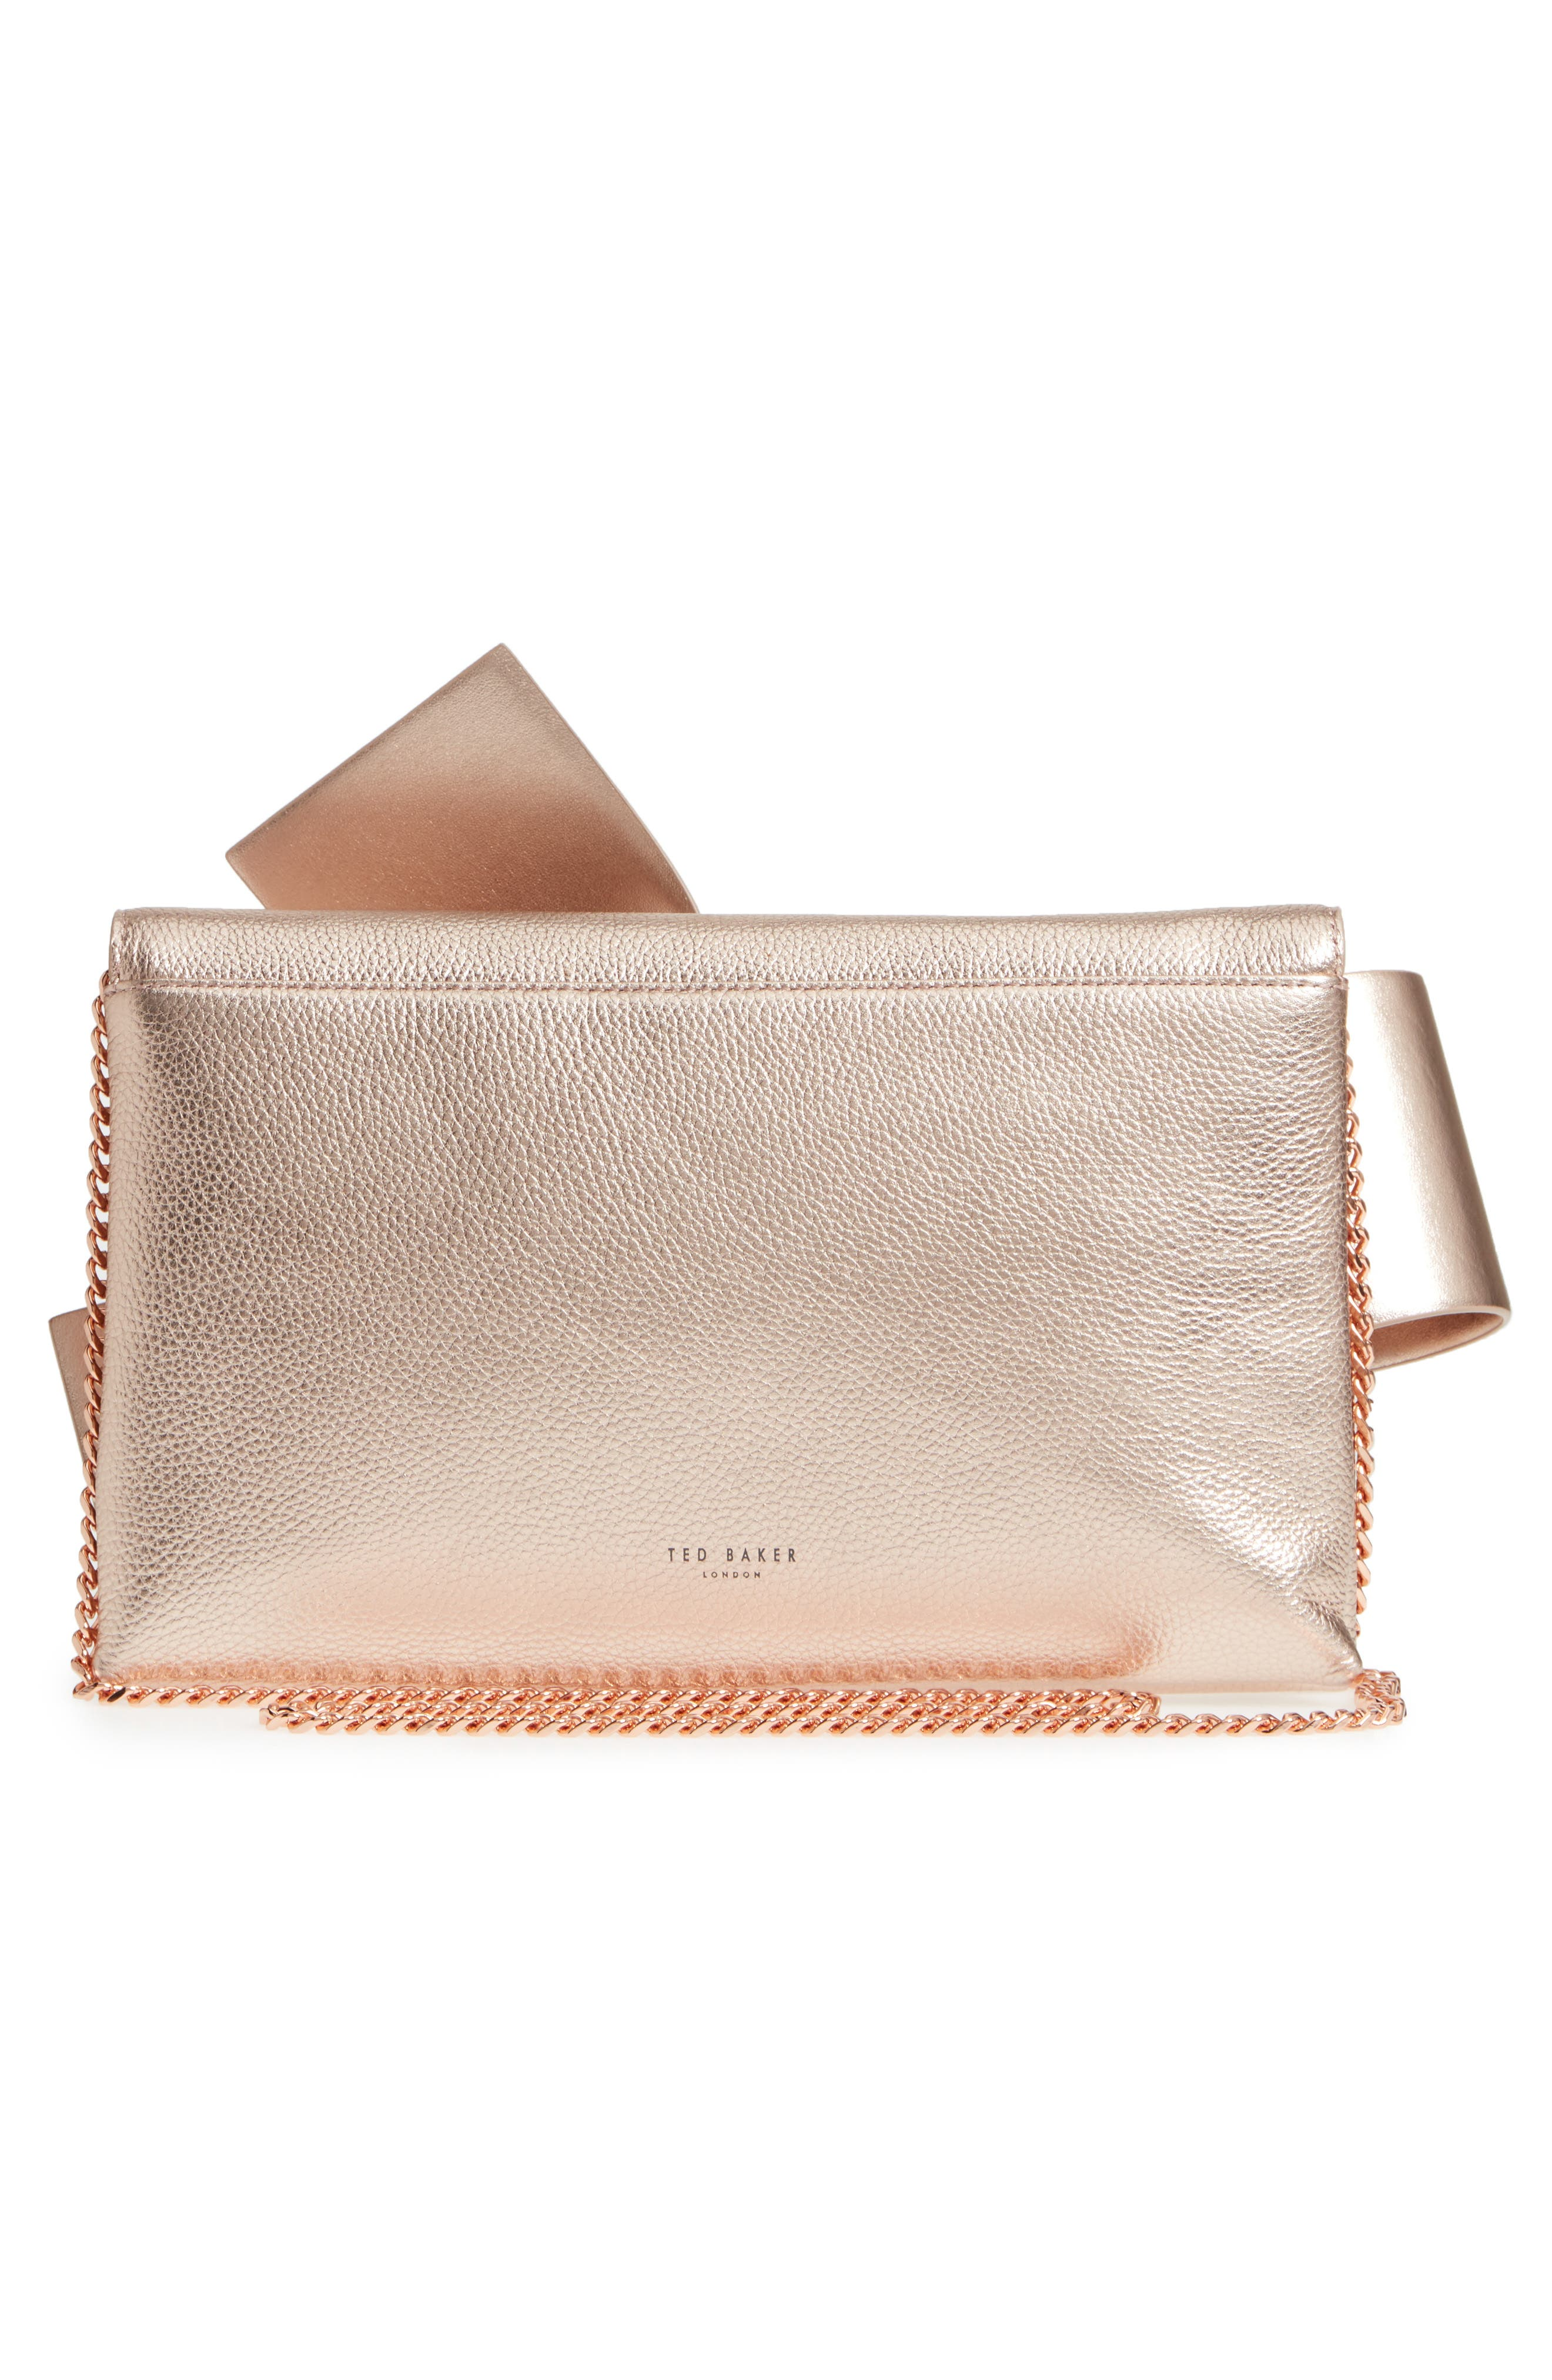 Knotted Bow Leather Clutch,                             Alternate thumbnail 3, color,                             Rose Gold